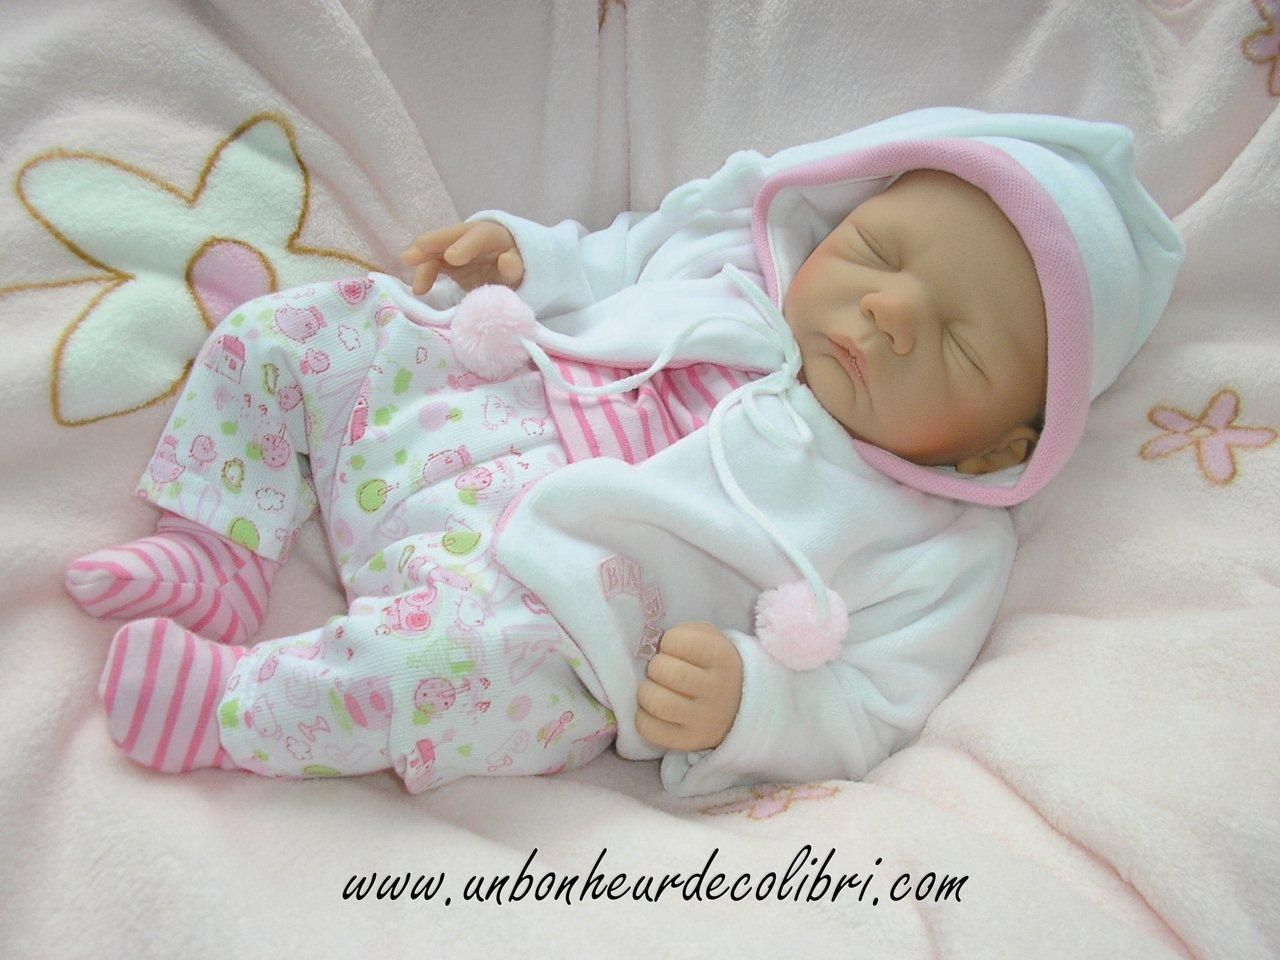 Babyzimmer Mia ~ 35 best miaculti images on pinterest baby dolls faces and baby